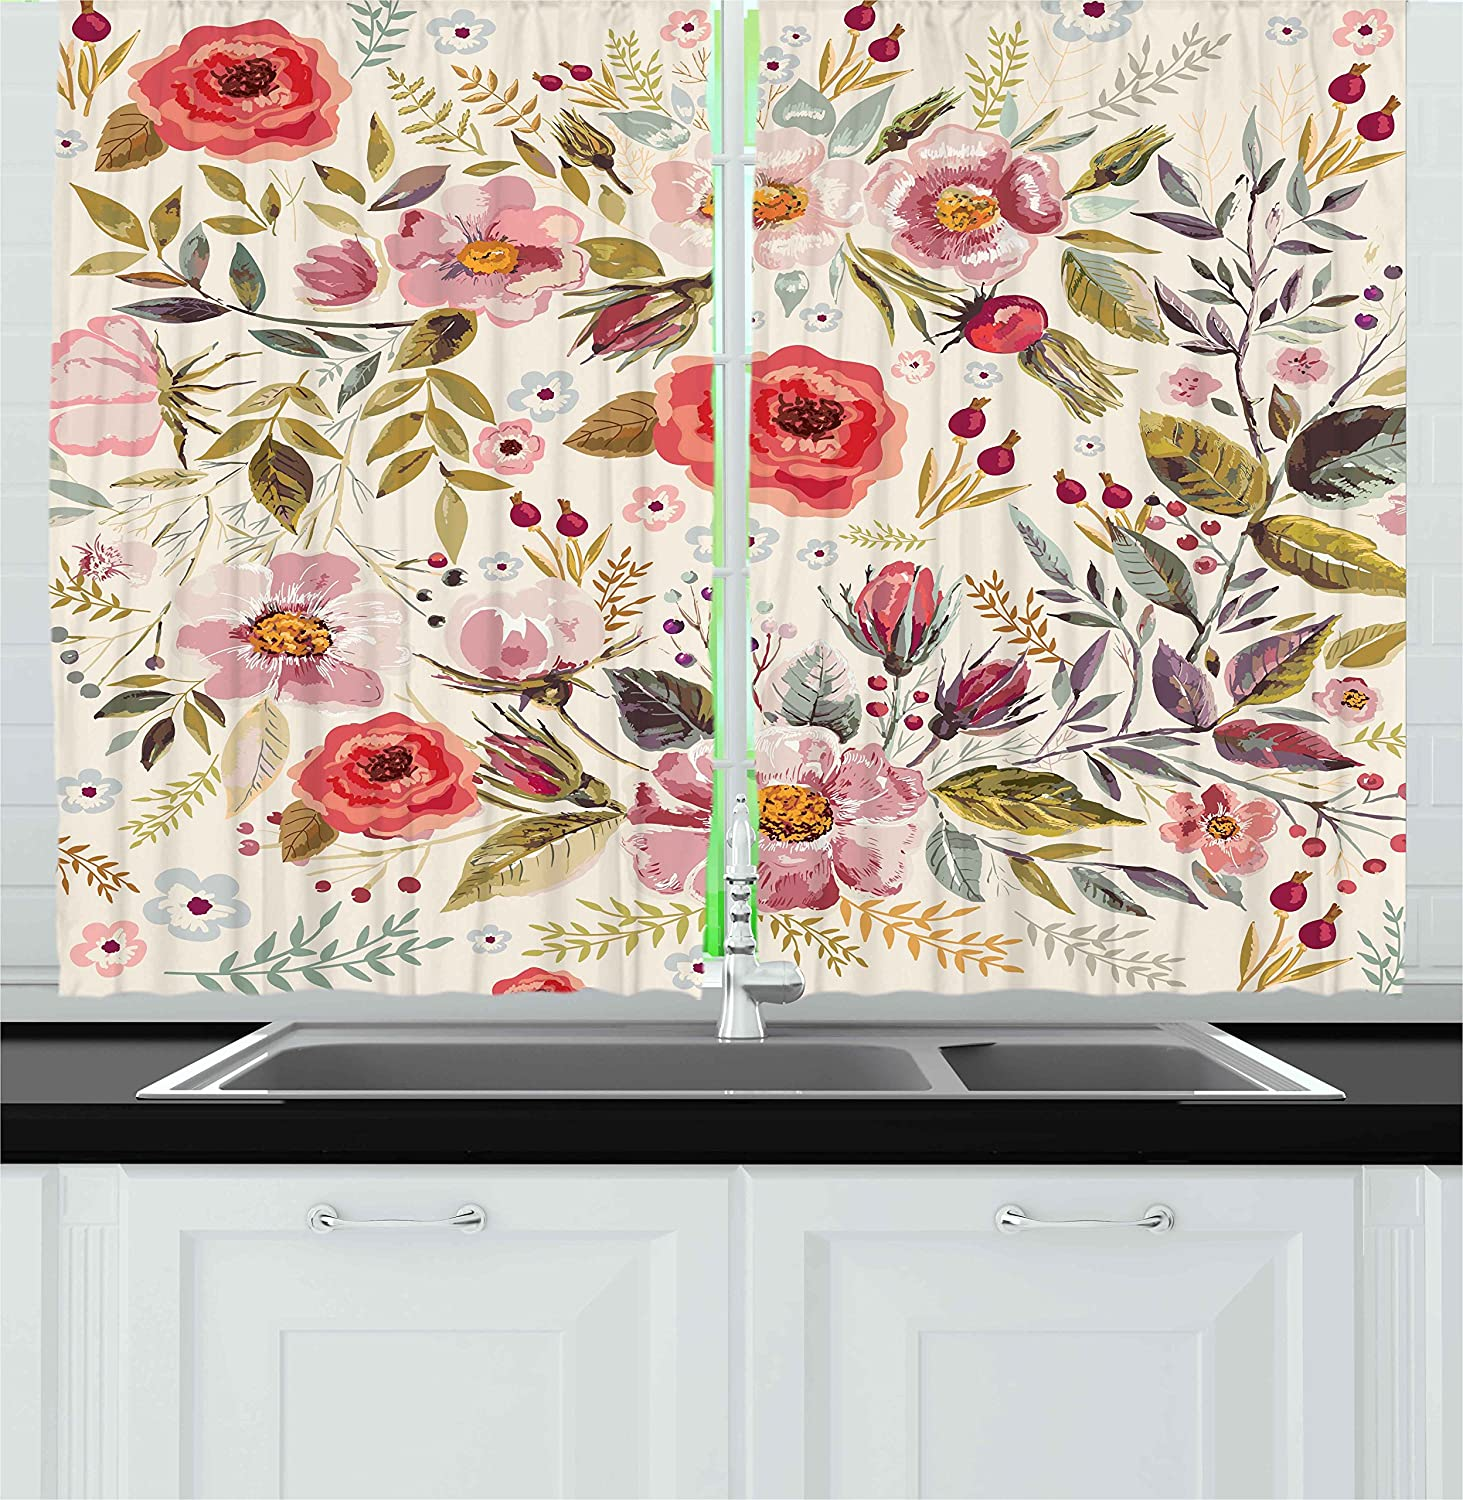 Ambesonne Shabby Flora Kitchen Curtains, Watercolor Abstract Spring Poppies Flowers Roses Buds Leaves Romantic Print, Window Drapes 2 Panel Set for Kitchen Cafe Decor, 55